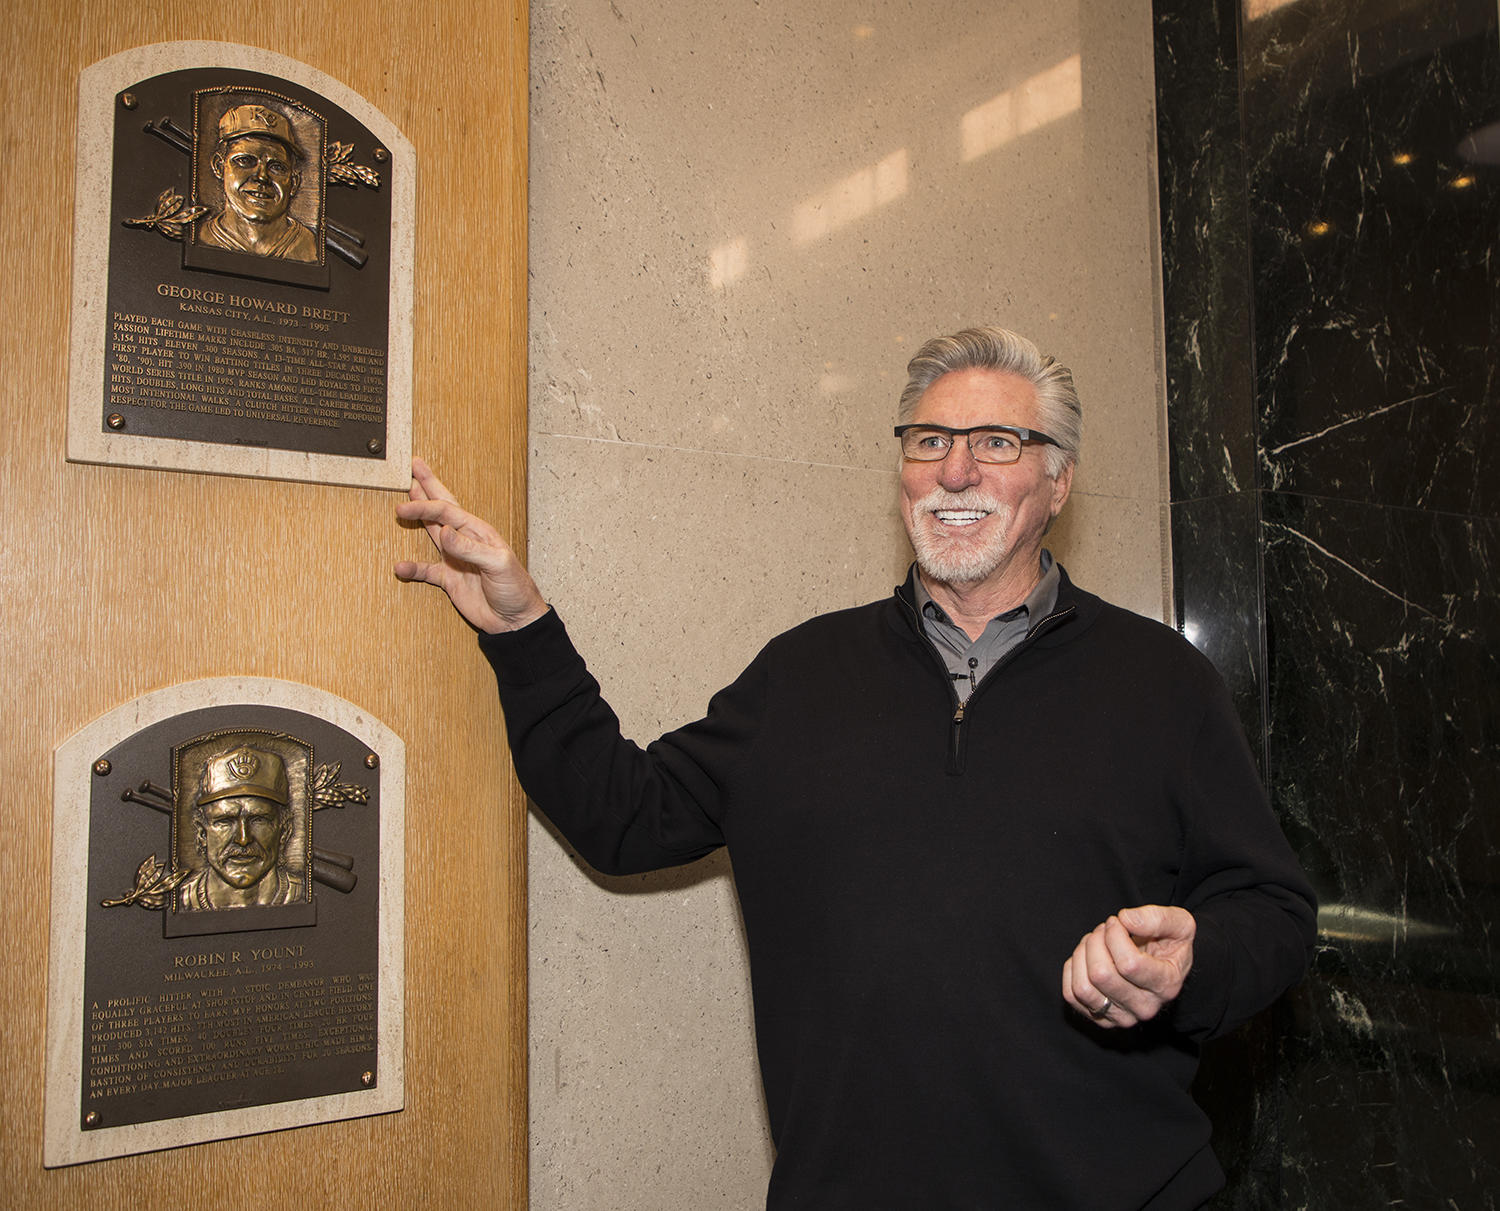 Jack Morris motions toward George Brett's plaque in the <em>Plaque Gallery</em> during his Orientation Visit. (Milo Stewart Jr./National Baseball Hall of Fame and Museum)